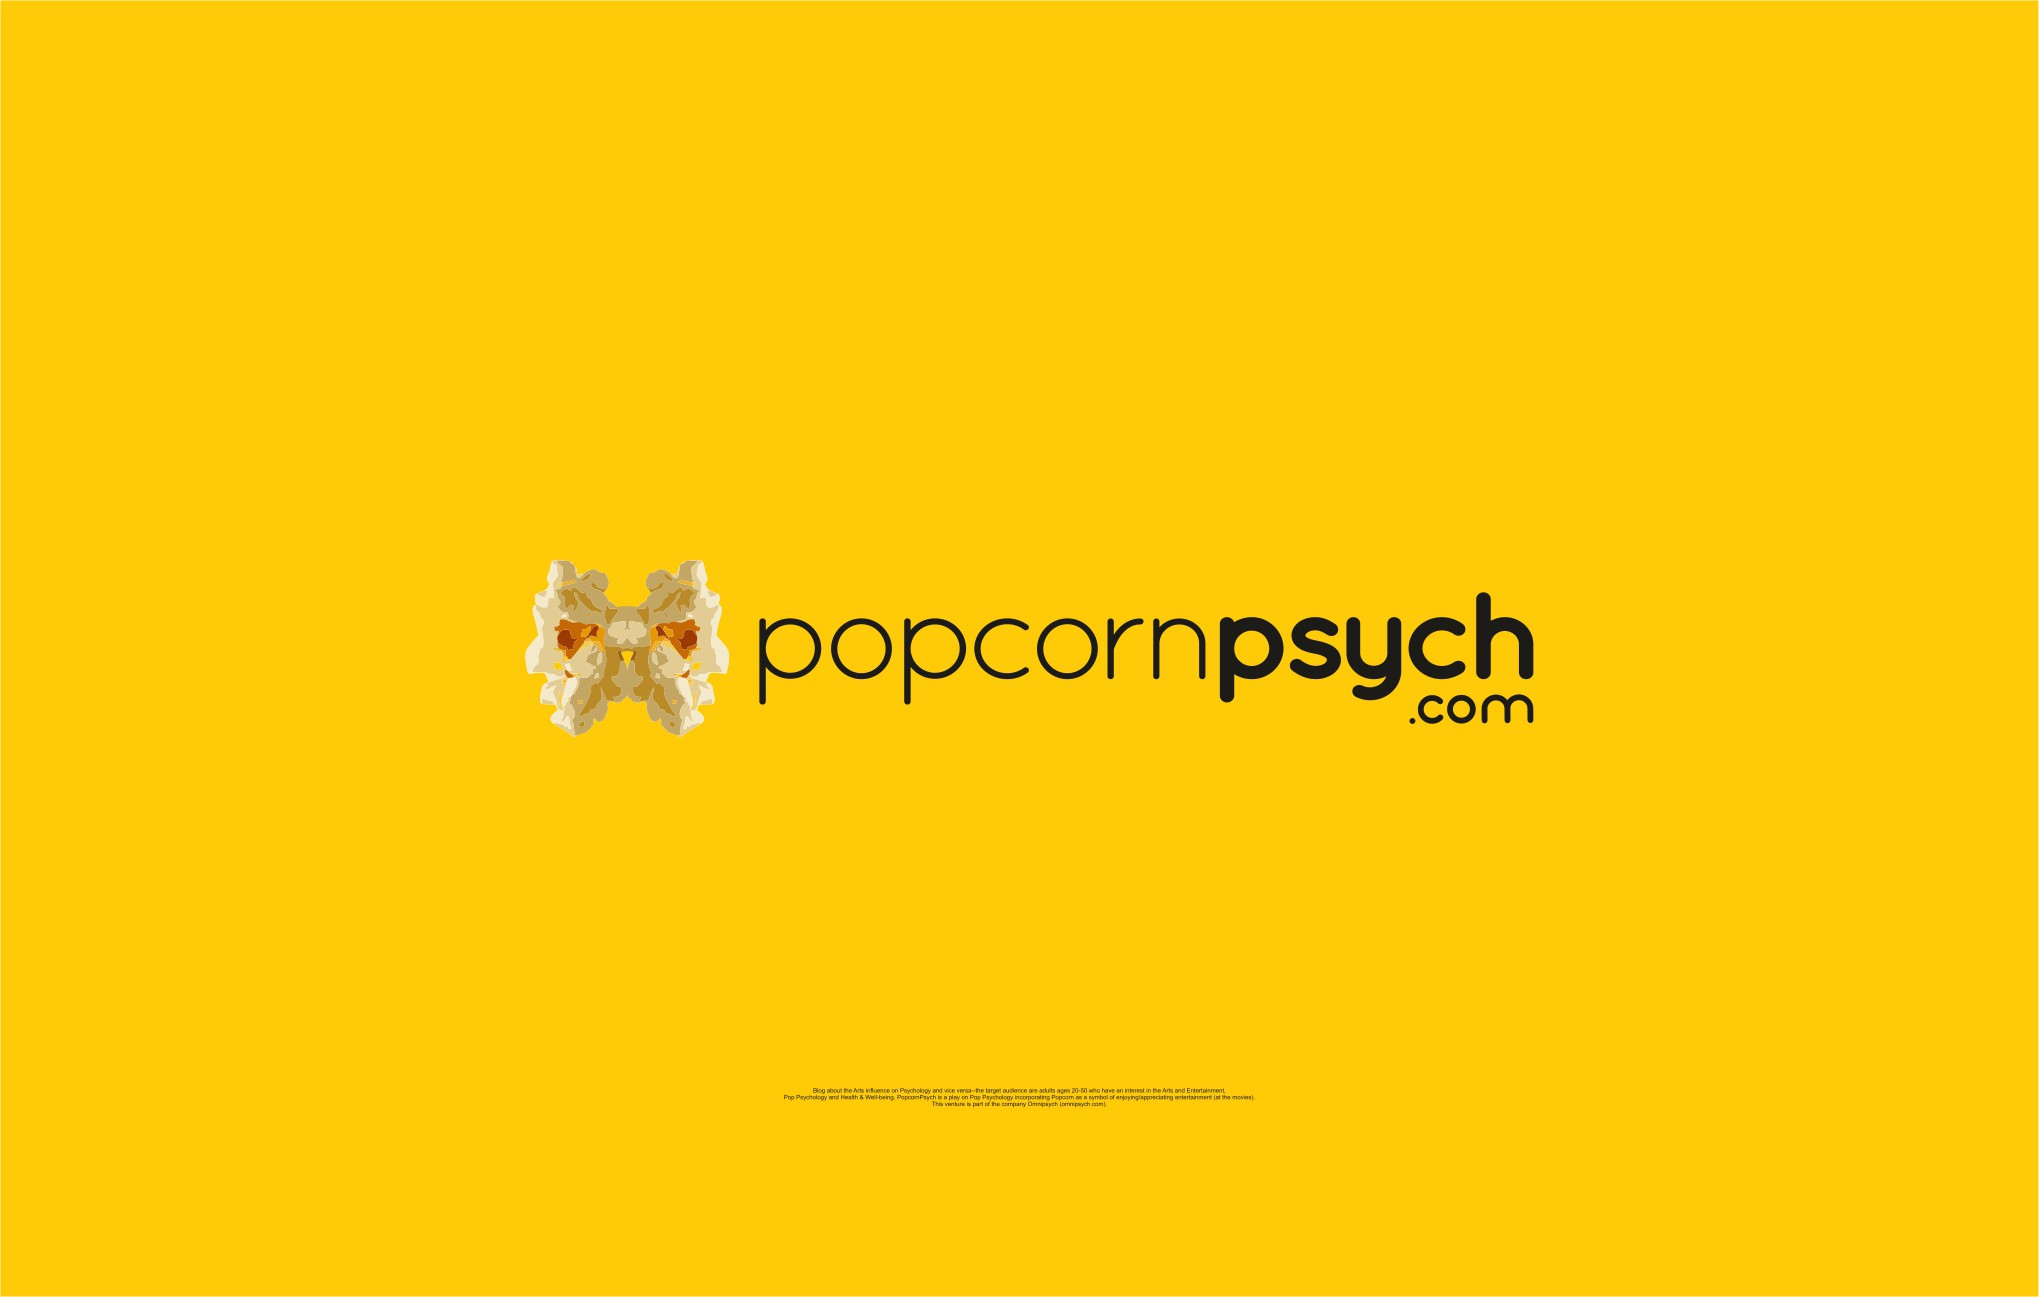 Create a clean design featuring popcorn for the blog PopcornPsych